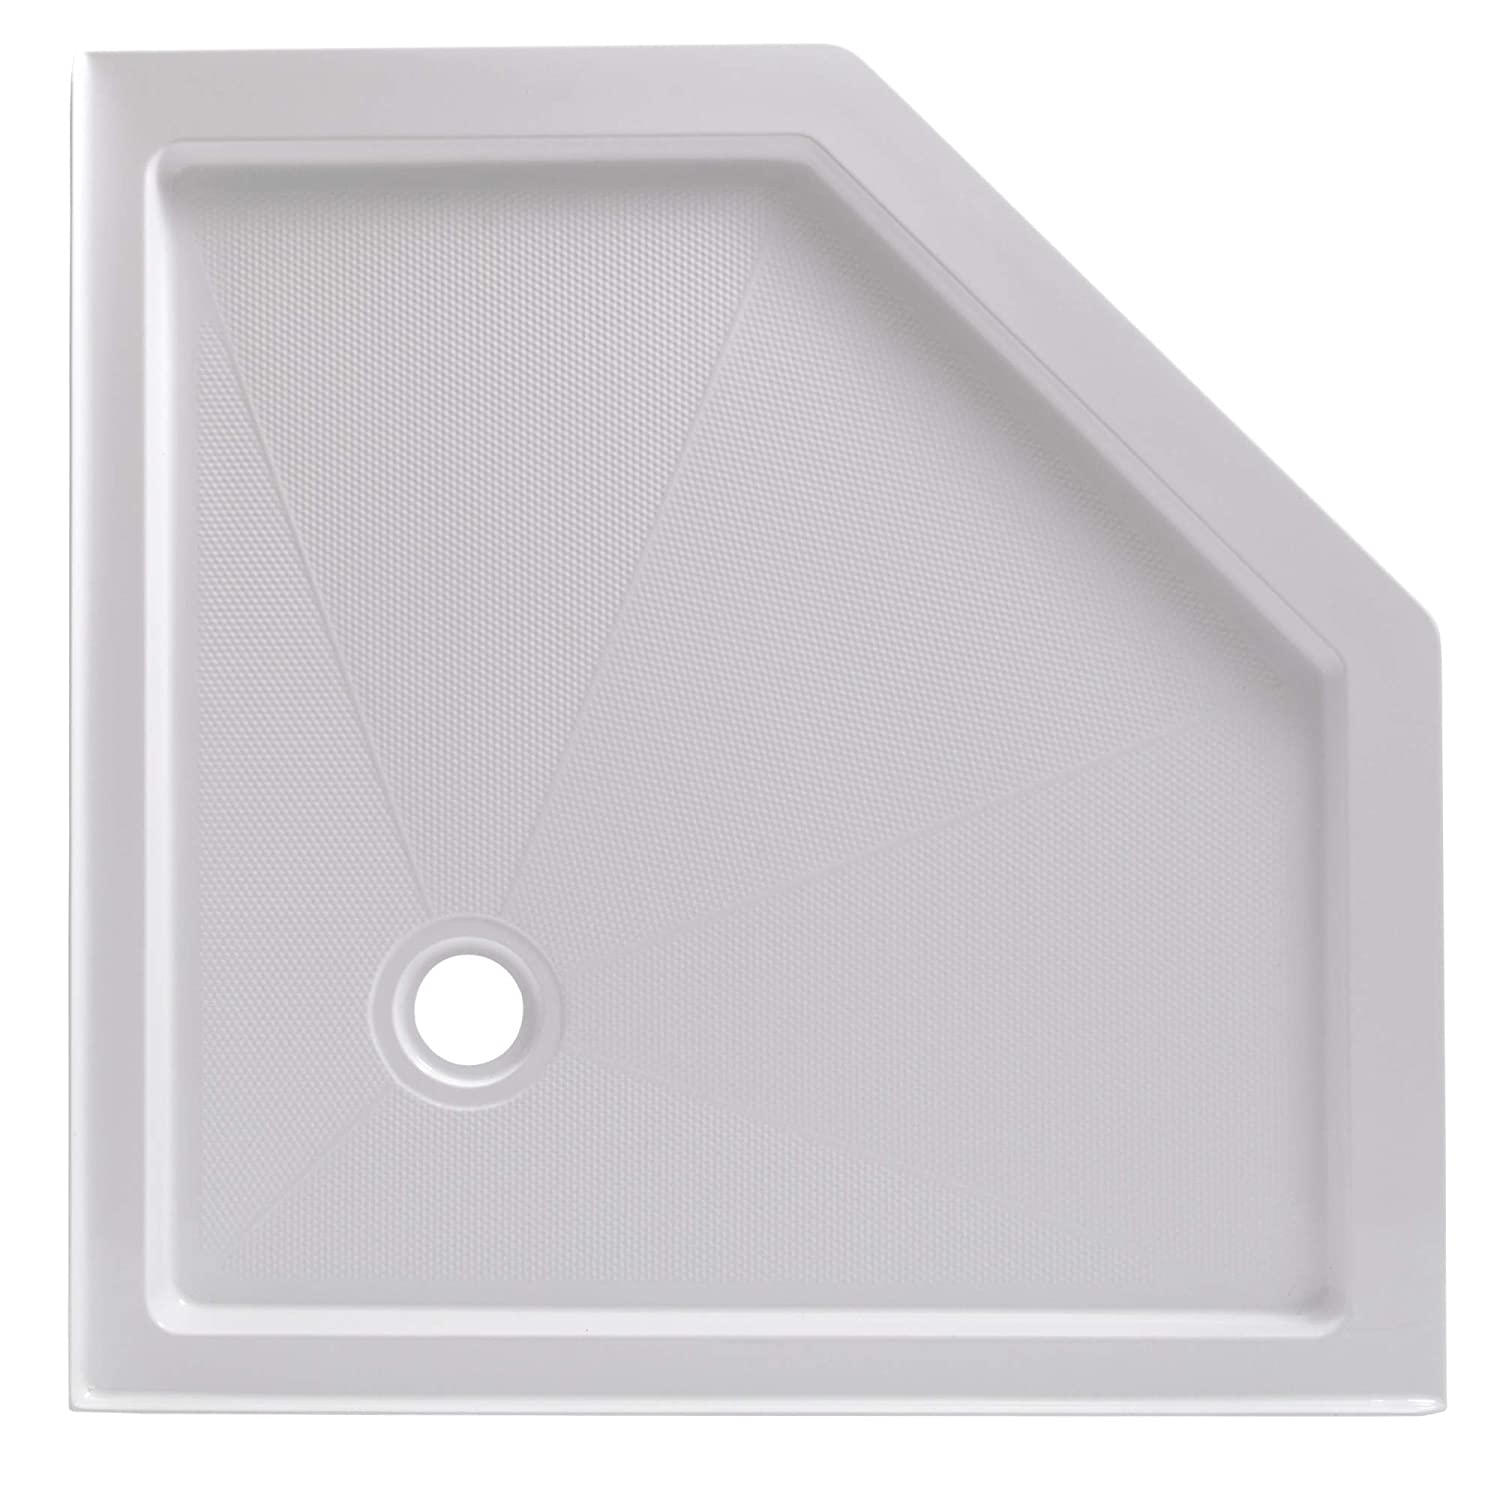 Neo Angle Shower Base.Foremost 4242na W 42 X 42 Neo Angle Shower Base With